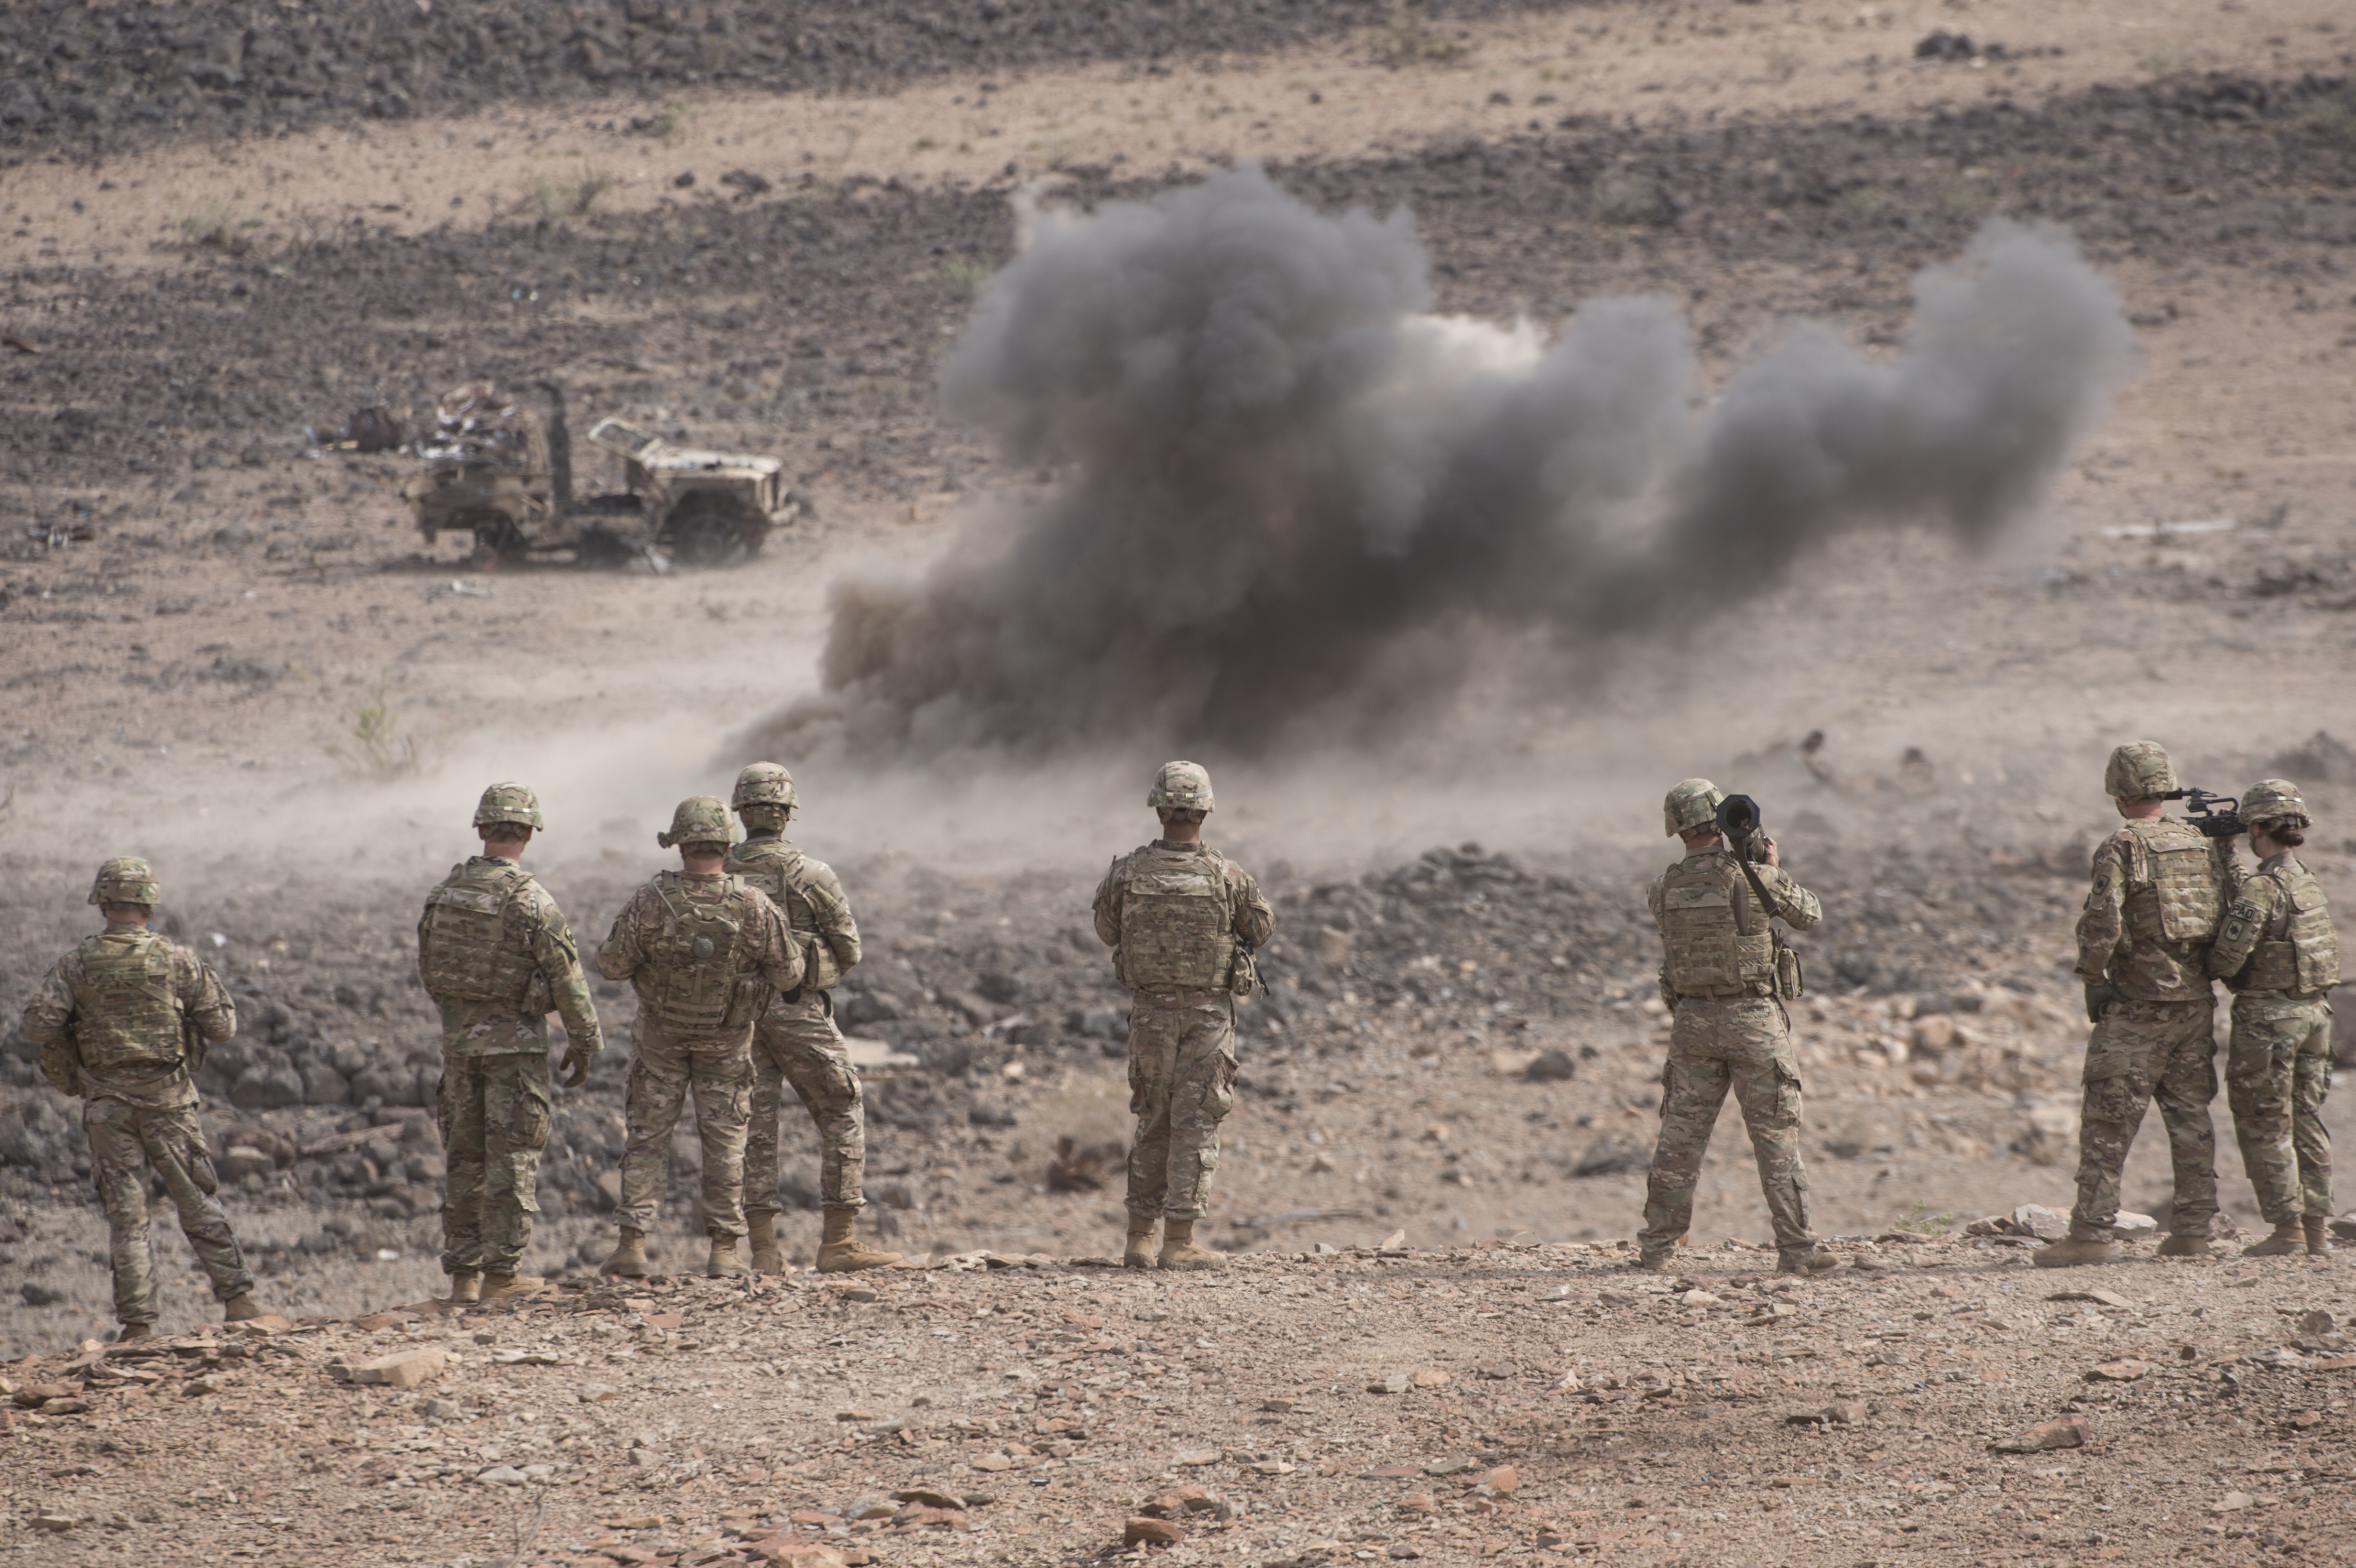 Soldiers selected by 1st Battalion, 153rd Infantry Regiment, as Soldiers of the month while deployed with the Combined Joint Task Force-Horn of Africa in Djibouti, were offered the opportunity to participate in a limited AT4 live-fire exercise at a range along the southern coast of the Gulf of Tadjoura, Aug. 22, 2017. The AT4 is a shoulder-fired anti-tank weapon which is disposable after just one use, making it a special opportunity to fire one. (U.S. Air National Guard photo by Tech. Sgt. Joe Harwood)